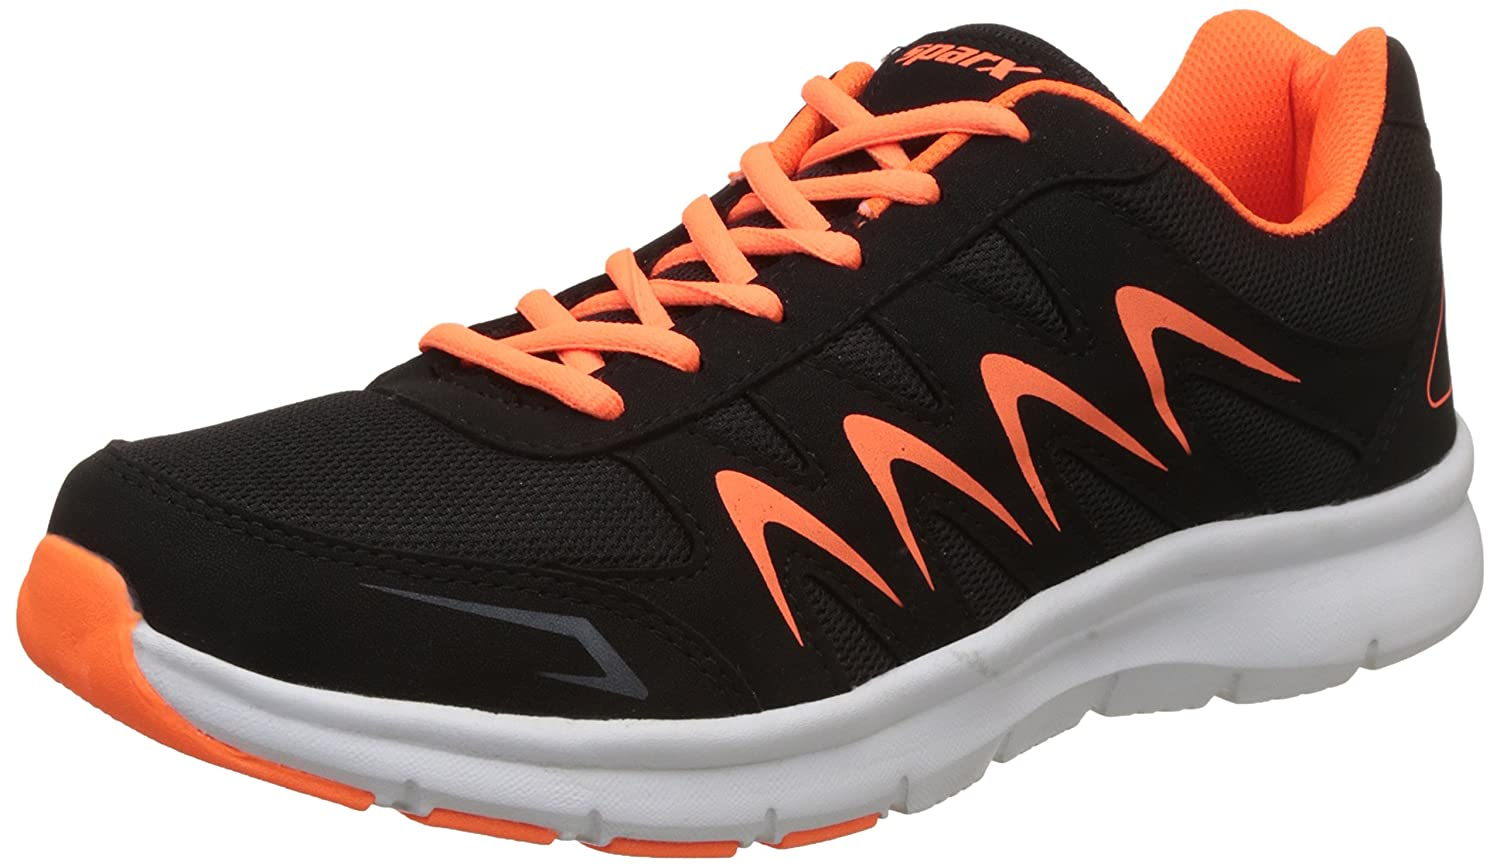 9b14ac2fb4b347 Sparx Men s Running Shoes  Buy Online at Low Prices in India - Amazon.in